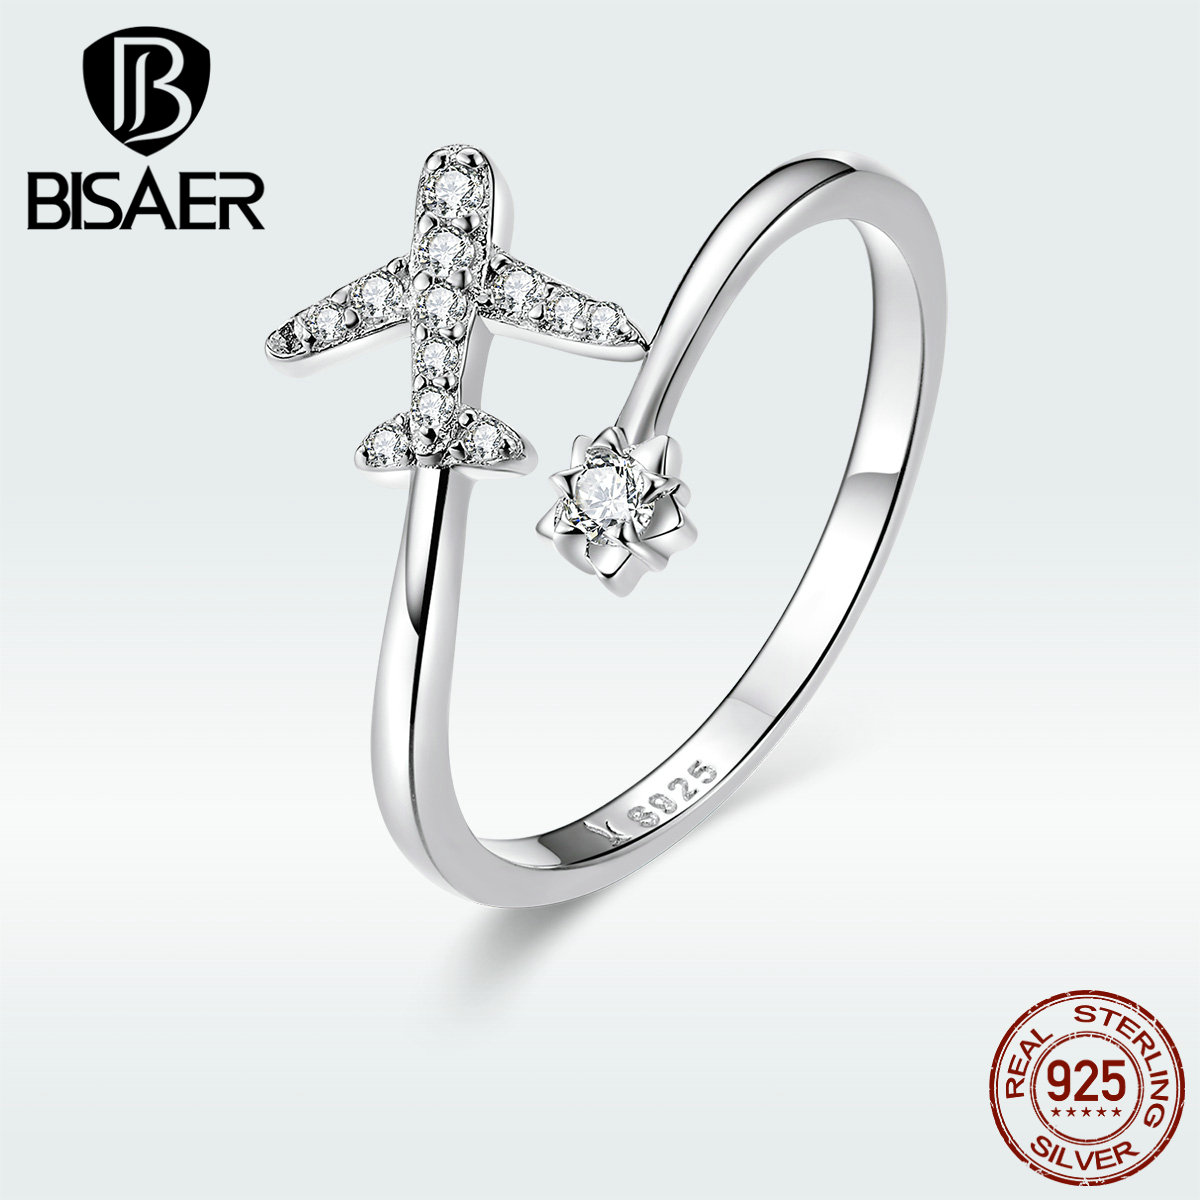 New Arrival BISAER 925 Sterling Silver Travelling Dream Cubic Zircon Plane Adjustable Rings For Women Jewelry Gift GXR623